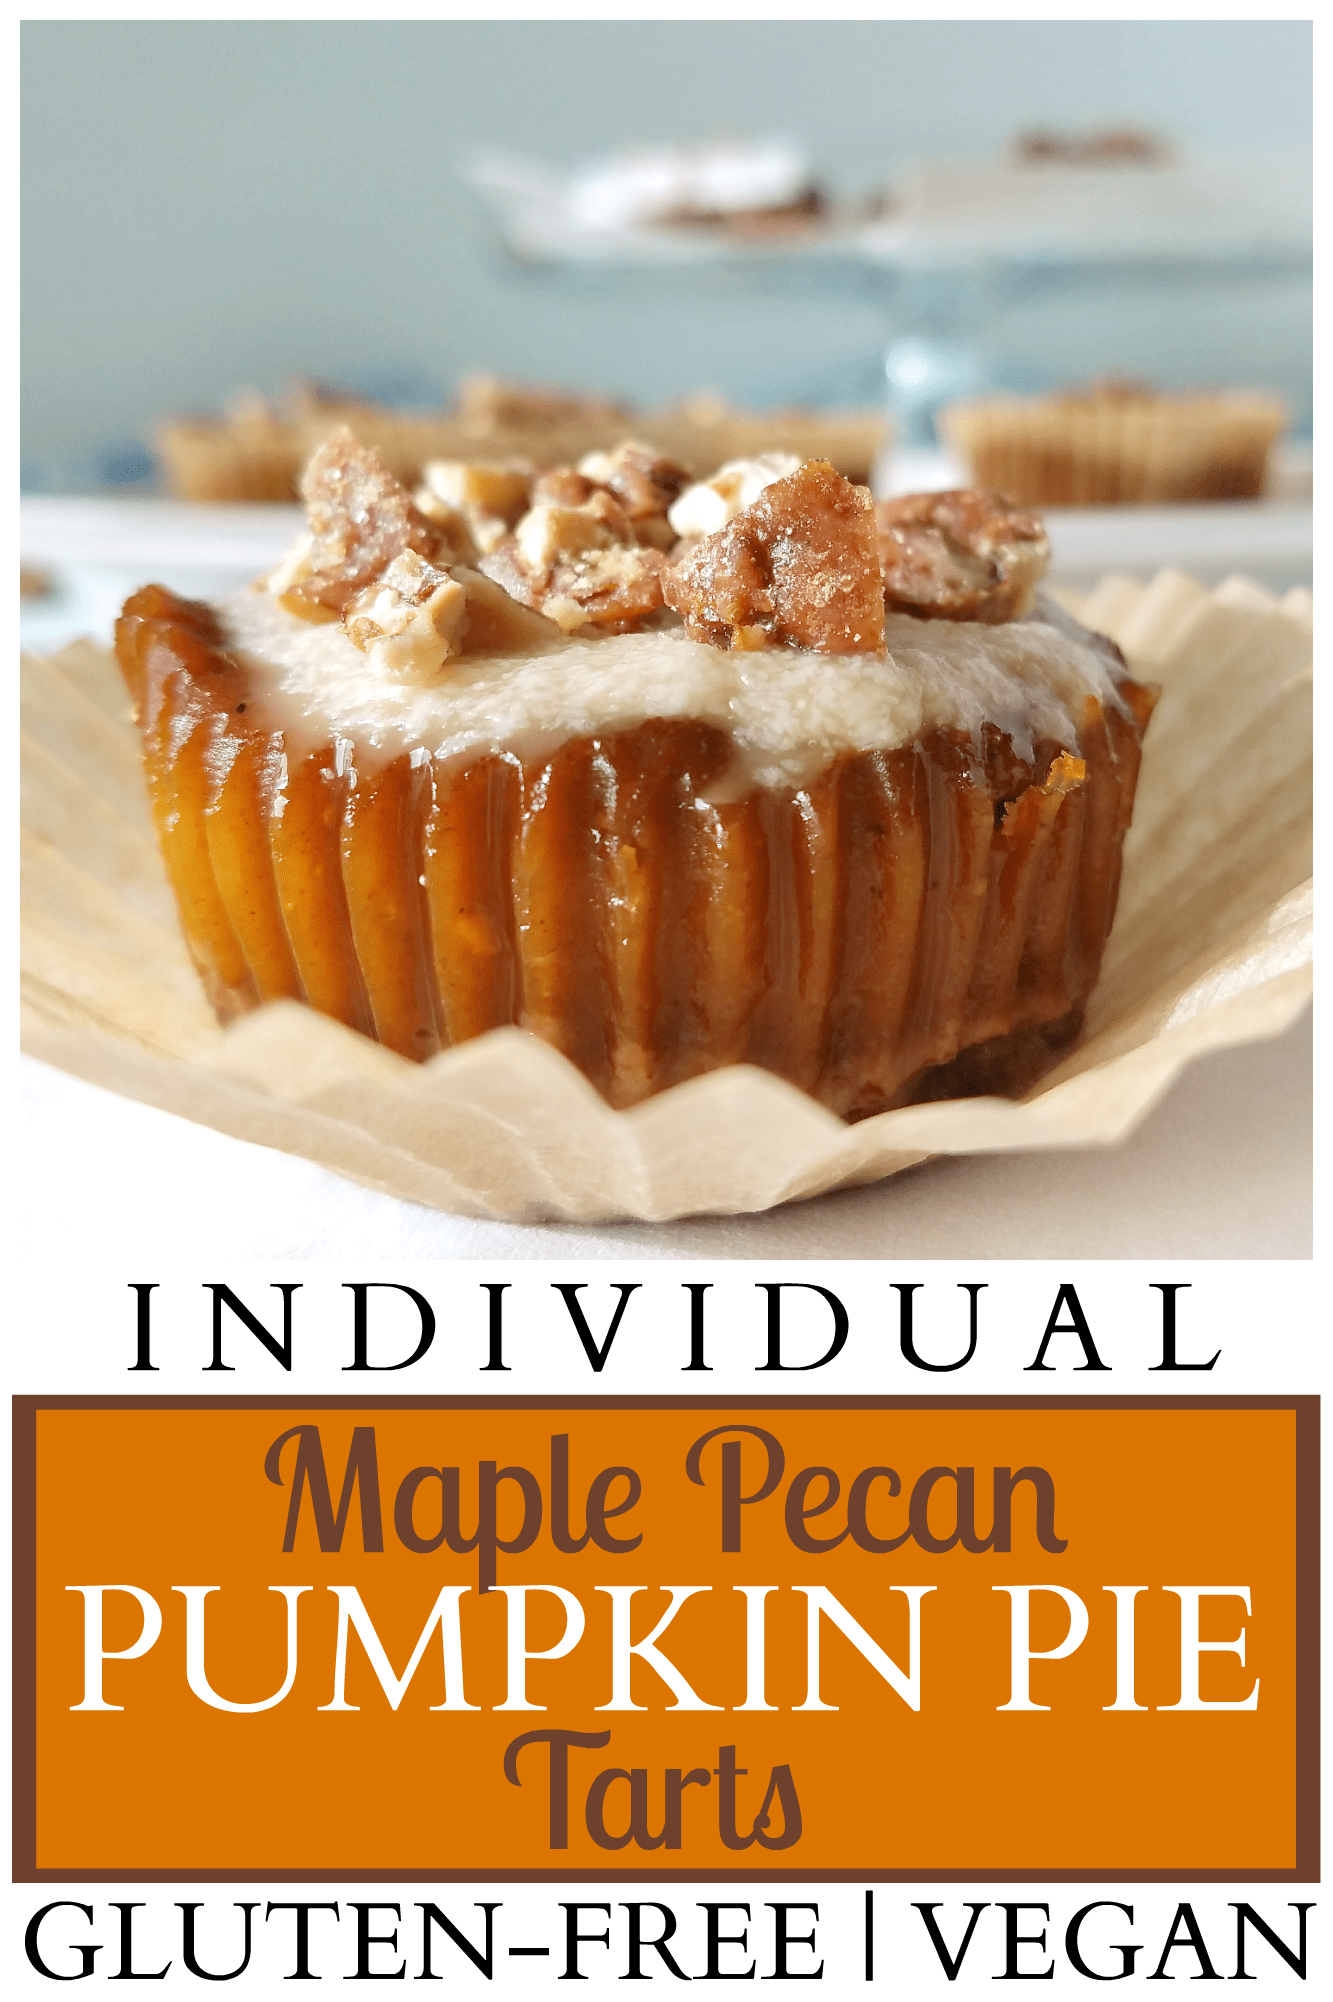 These individual Maple Pecan Pumpkin Pie Tarts are bursting with flavor thanks to the pecan crust, maple glaze and perfectly-spiced pumpkin pie filling! Since they are gluten-free, grain-free, egg-free and dairy-free (vegan), they can be enjoyed by just about all of your guests, even those with food allergies. Get out your muffin pan and give these a try!